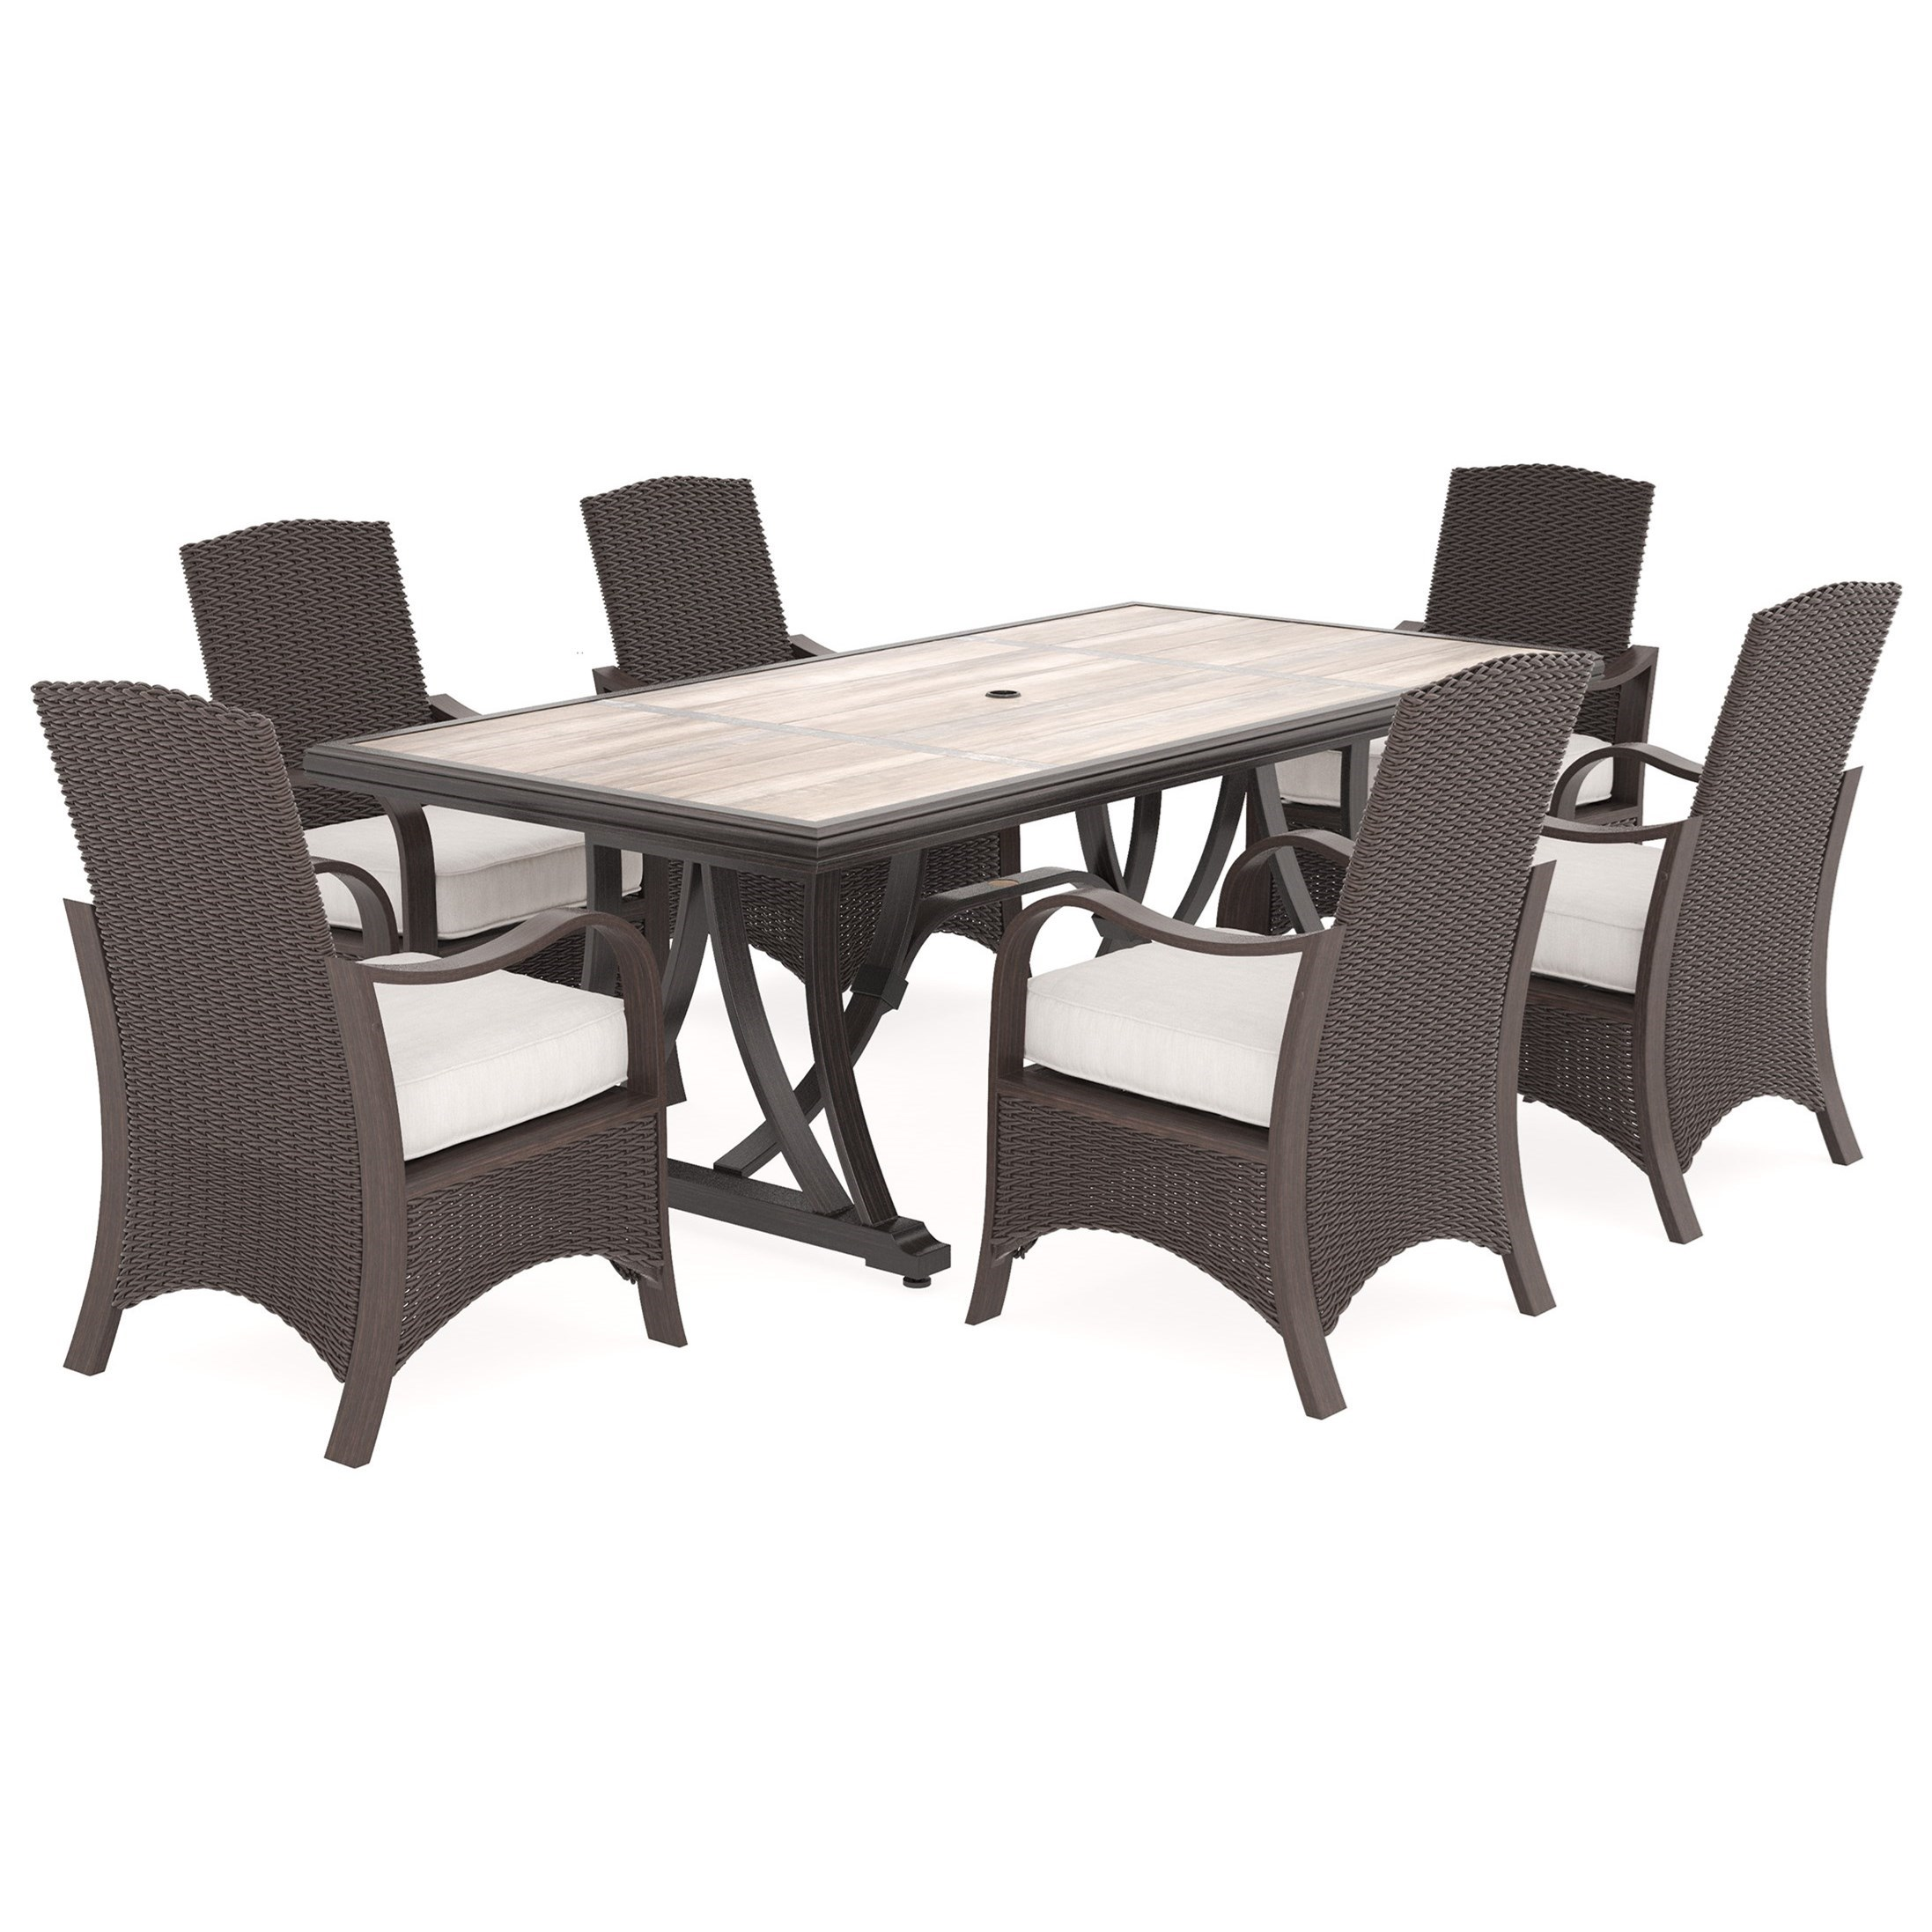 Marsh Creek 7 Piece Outdoor Dining Set by Signature Design by Ashley at Lapeer Furniture & Mattress Center